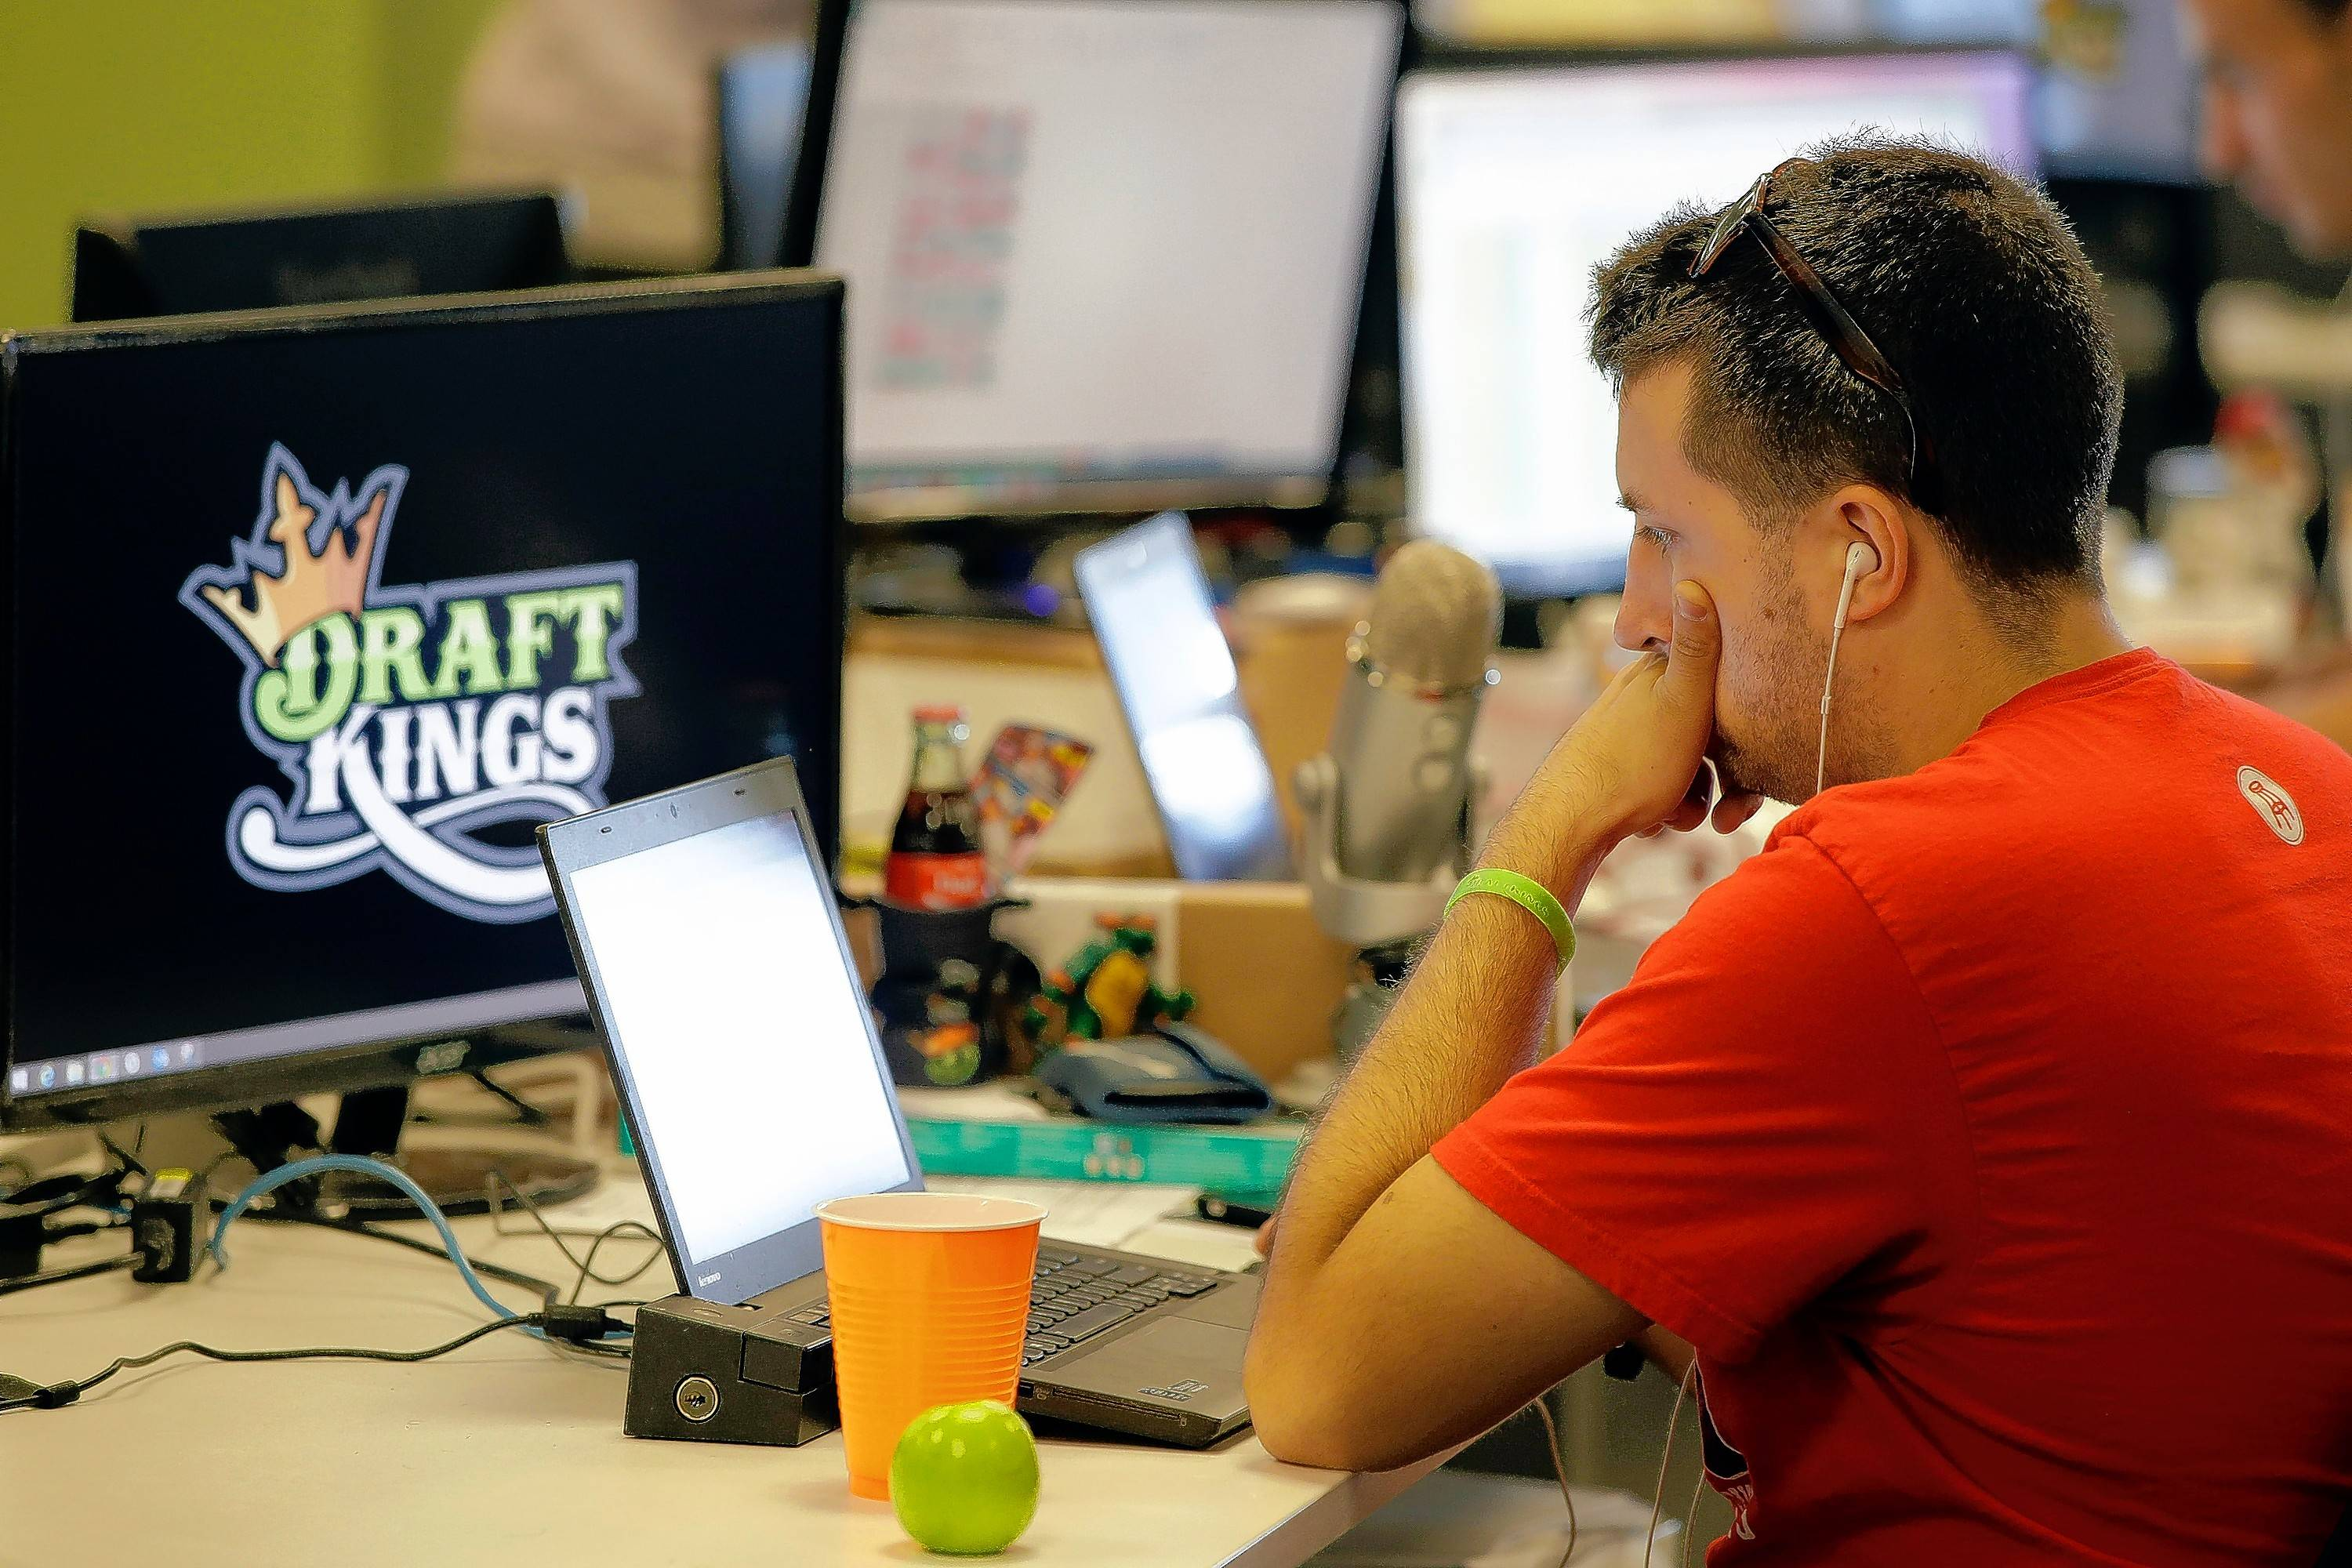 Plan would let casinos in on fantasy sports betting